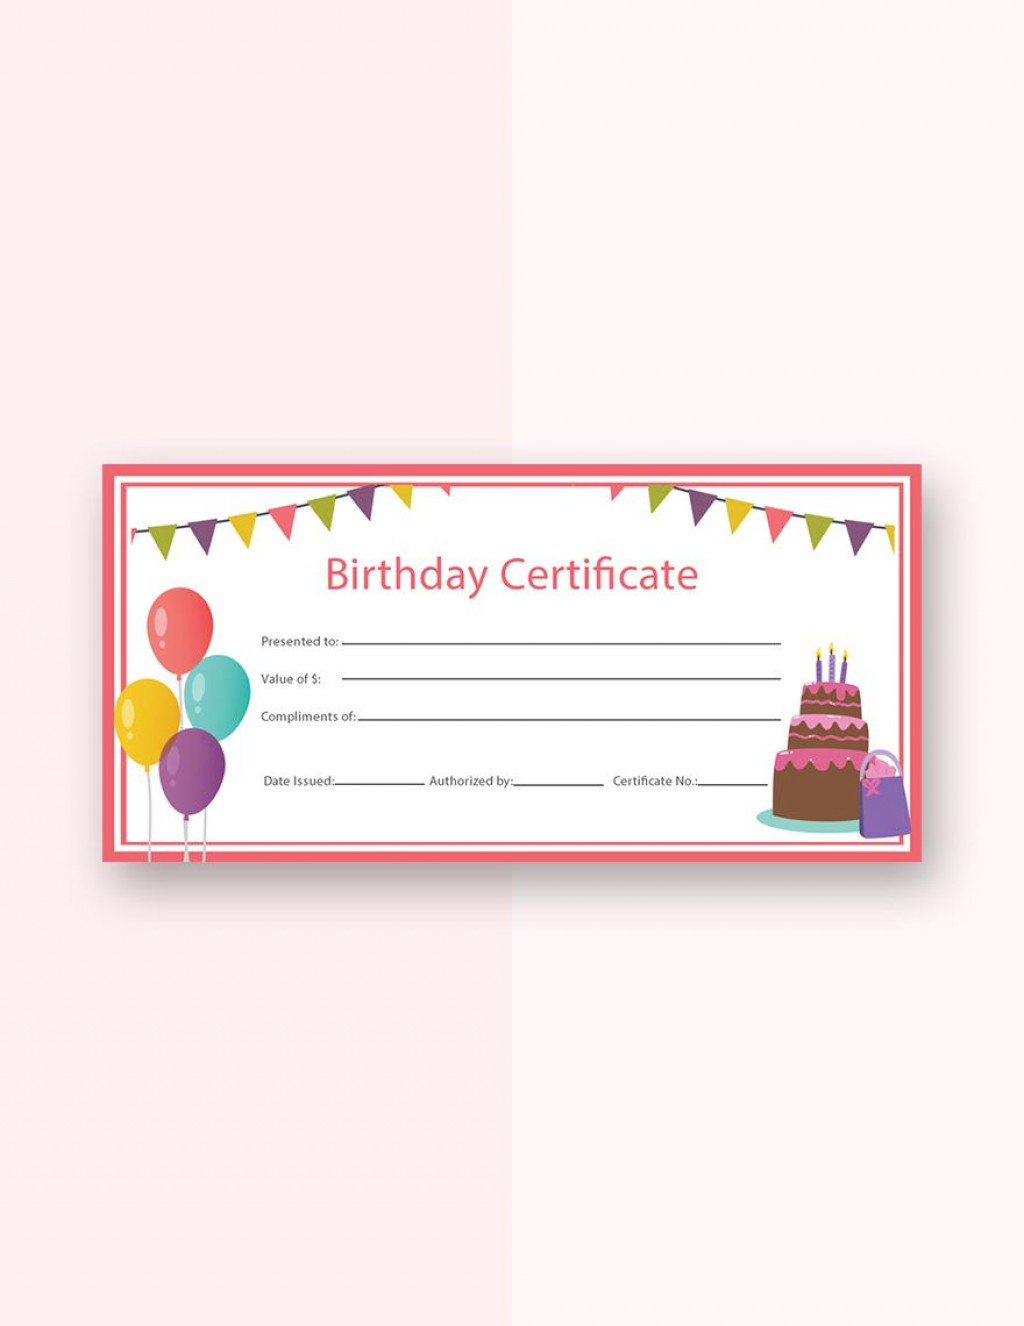 004 Fascinating Free Template For Gift Certificate High Definition  Printable Birthday Mac In WordLarge